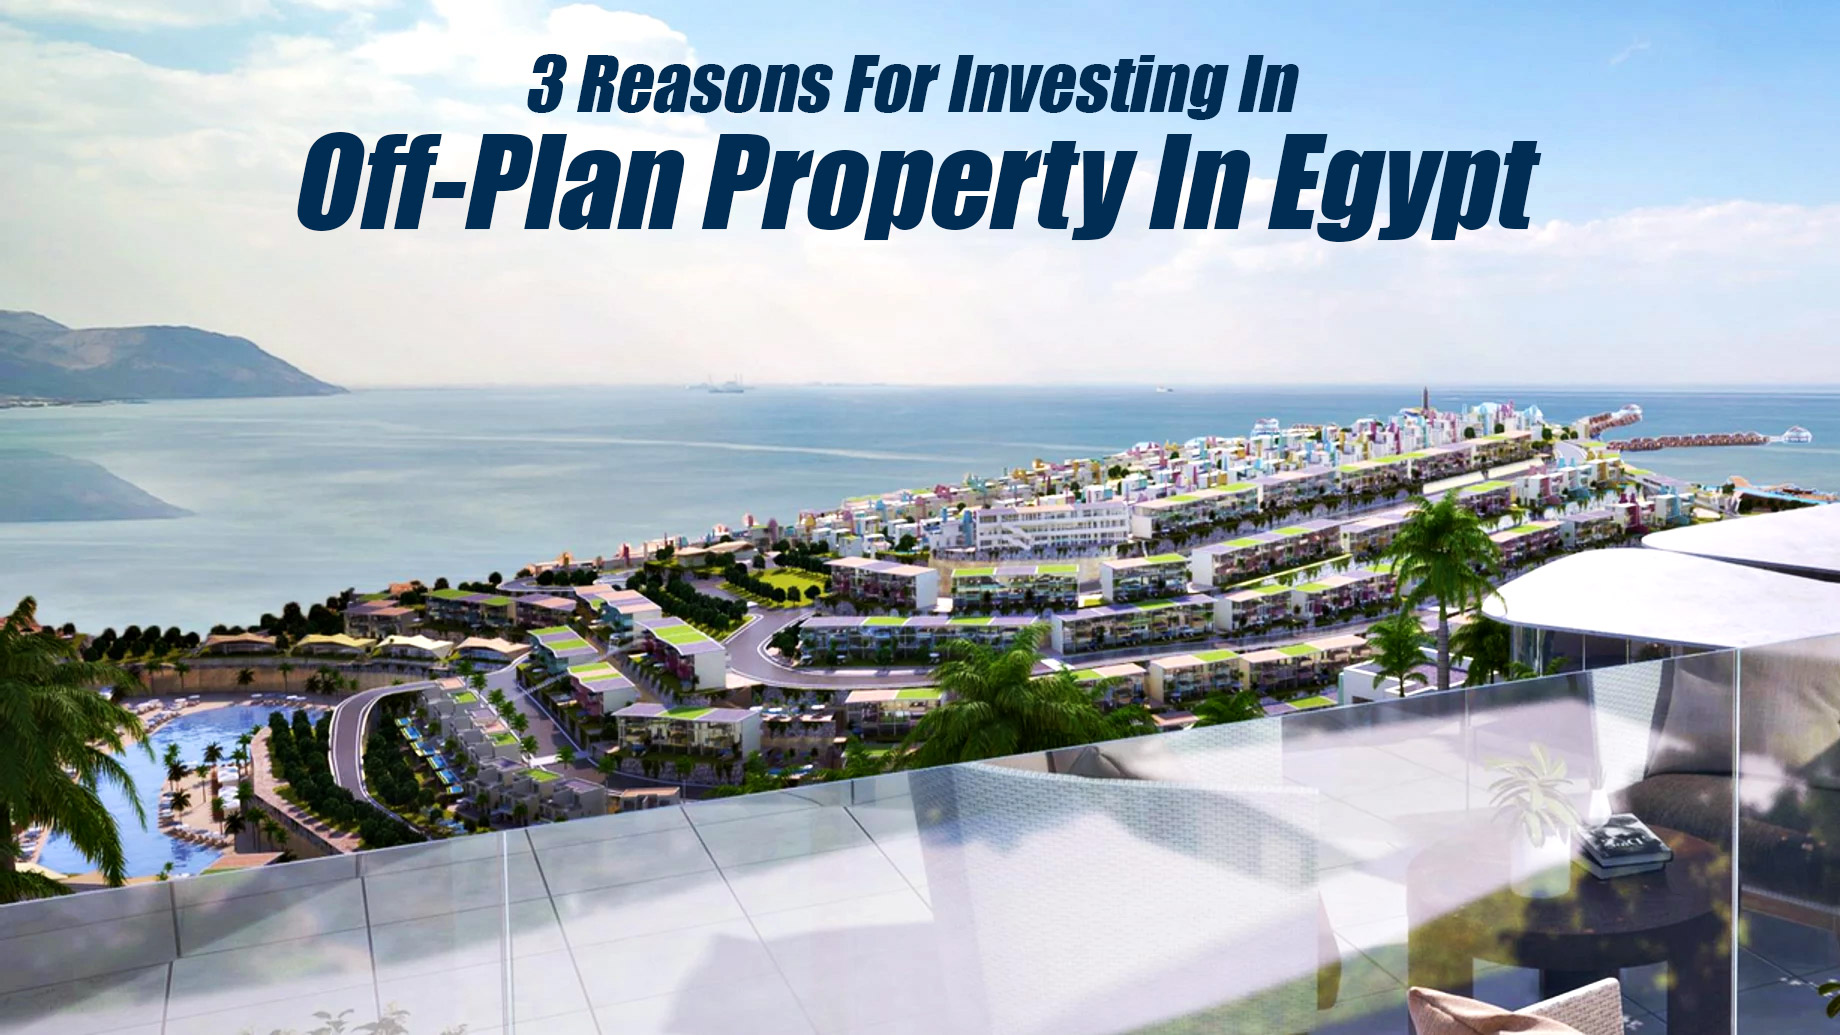 3 Reasons For Investing In Off-Plan Property In Egypt